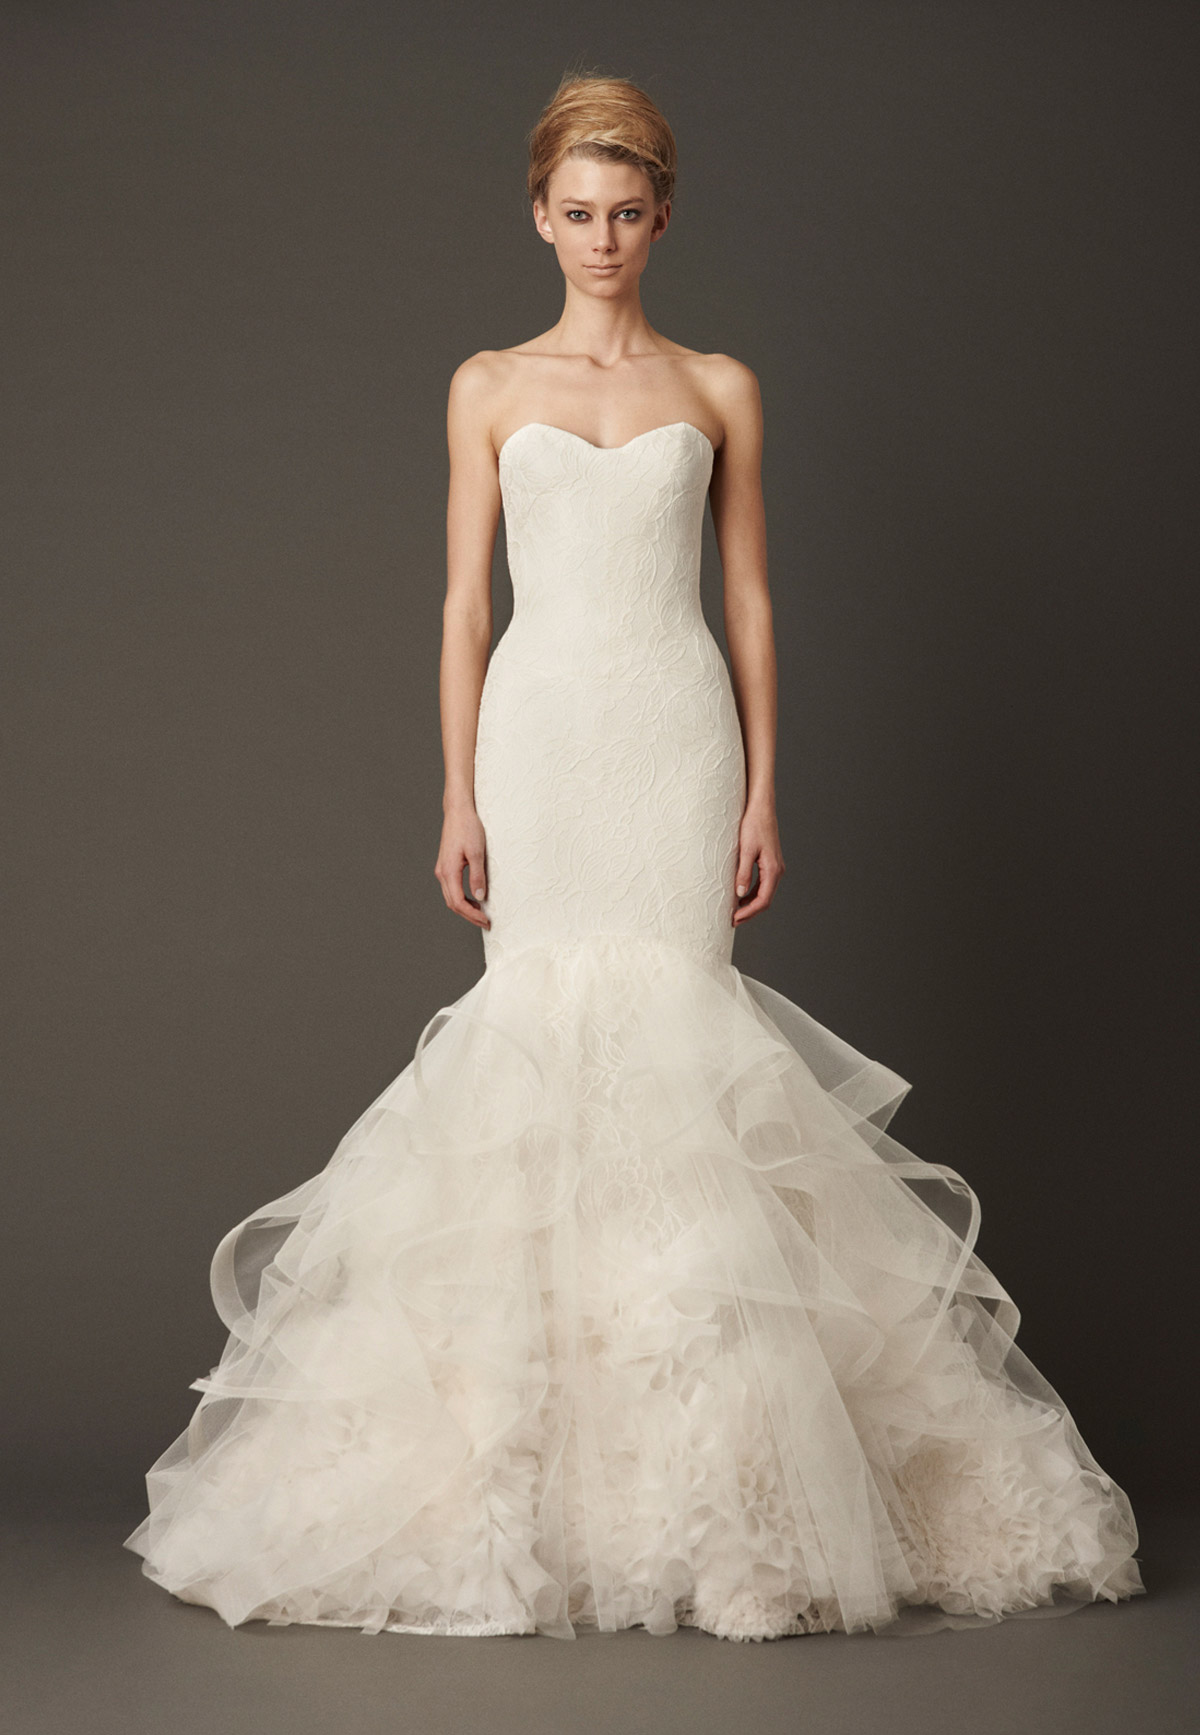 Mermaid Style Wedding Dresses Vera Wang : Vera wang lillian